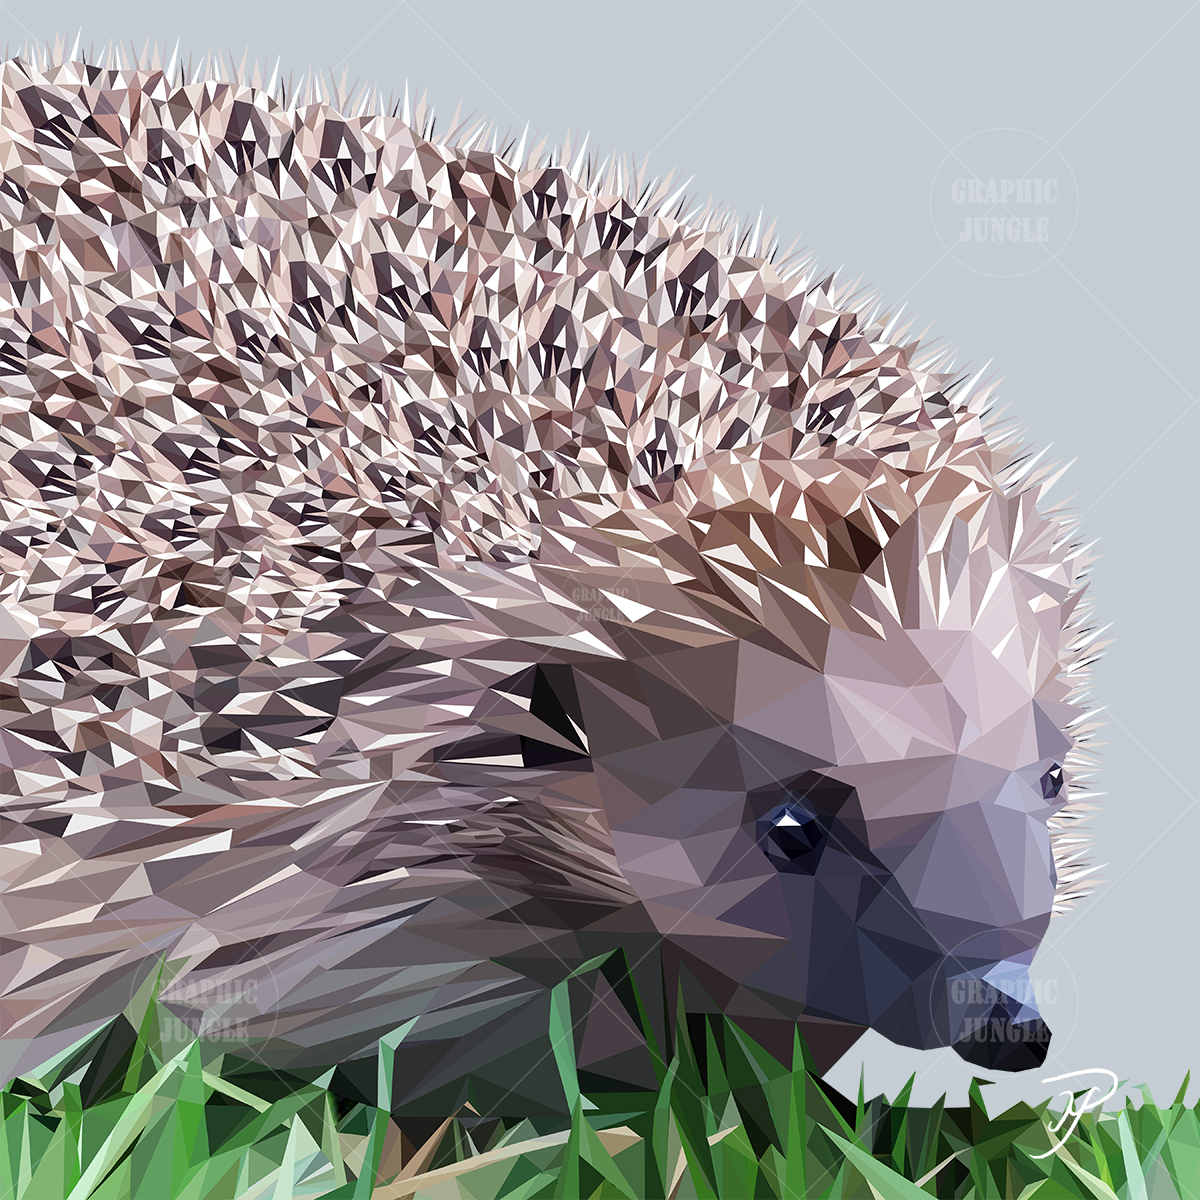 Hedgehog - Graphic Jungle